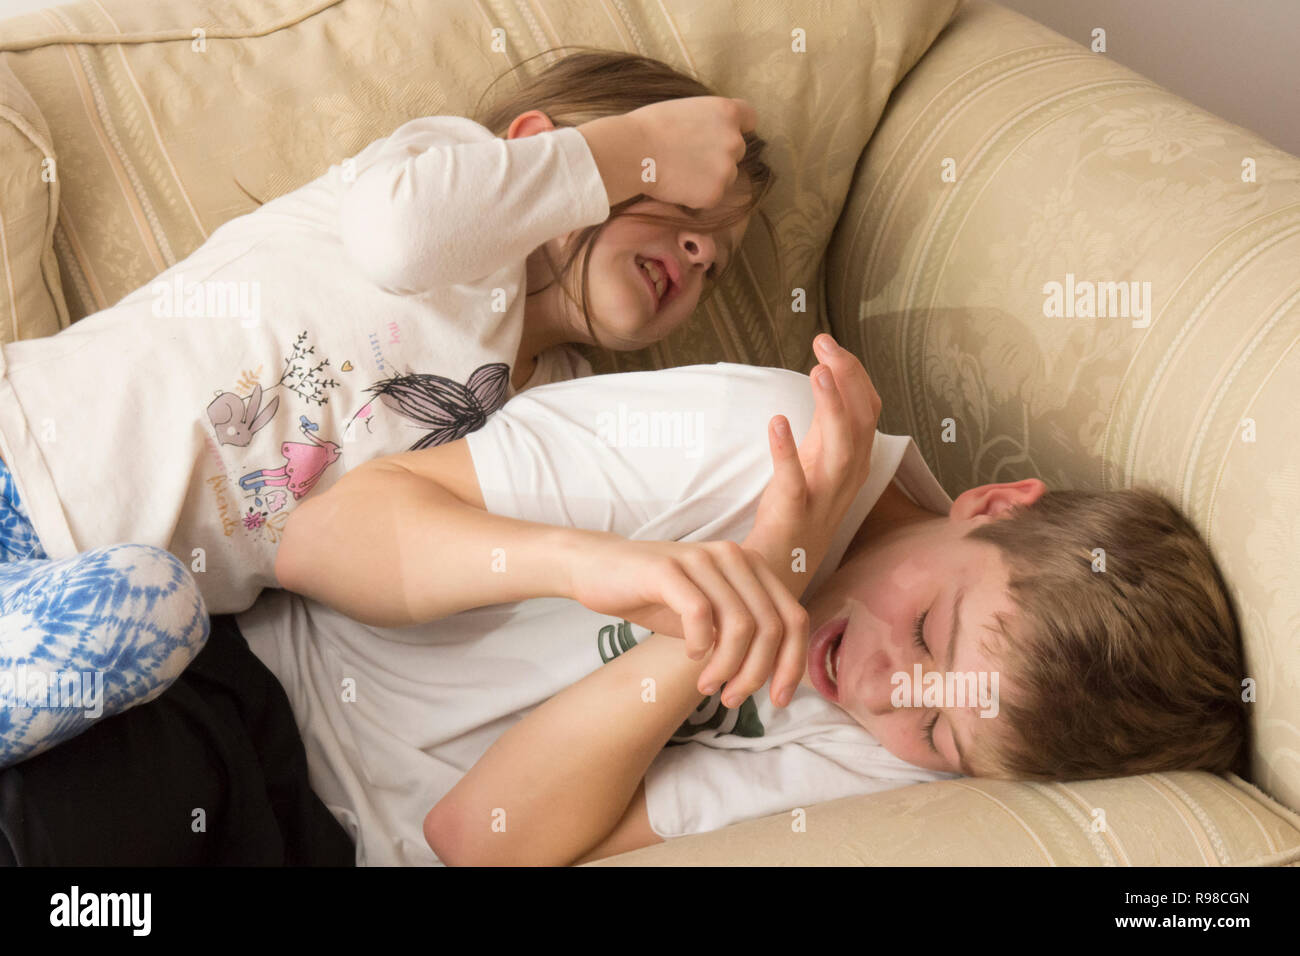 children, boy and girl, brother and sister, siblings, play-fighting, fighting, wrestling, noisy, violent, on sofa, twelve years old, six years old. Stock Photo